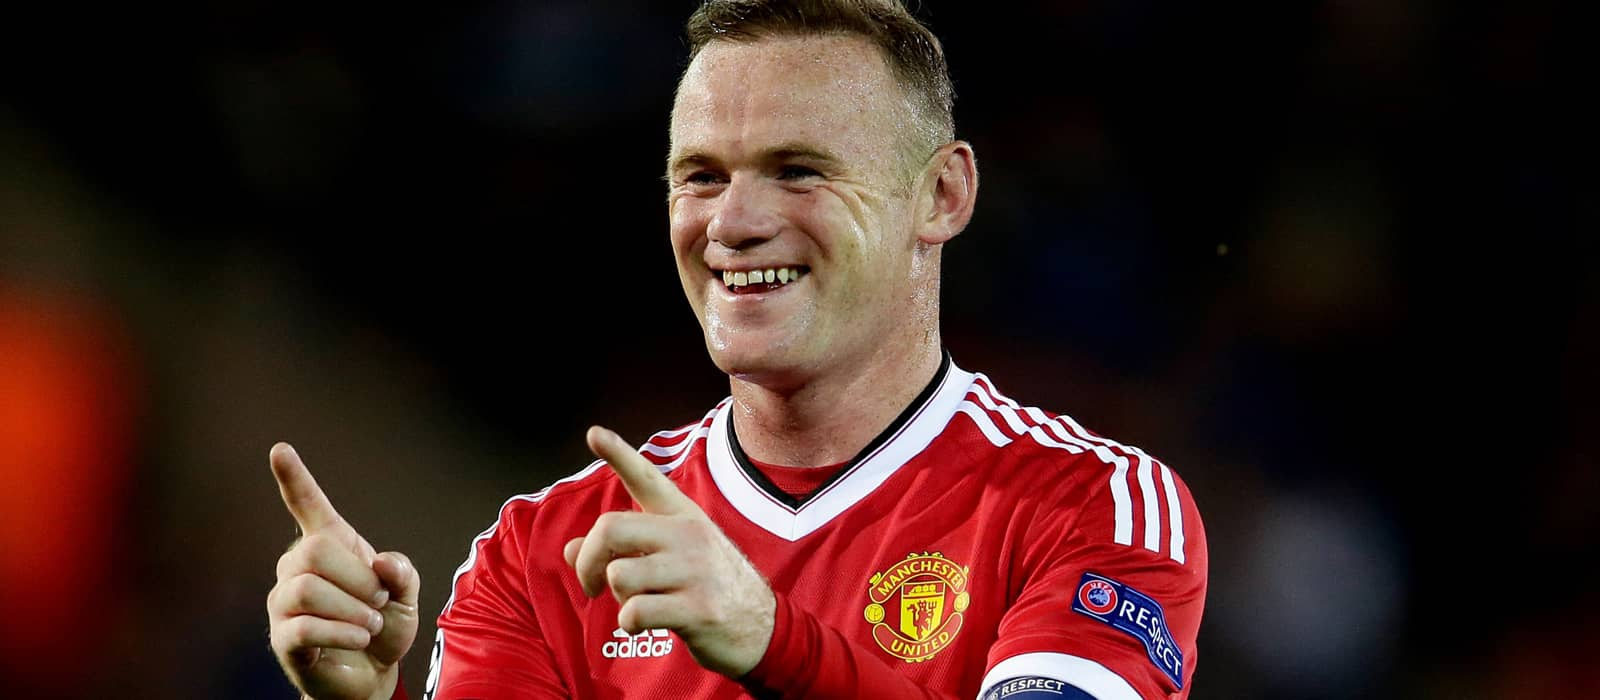 Manchester United's potential XI vs Crystal Palace: Wayne Rooney starts